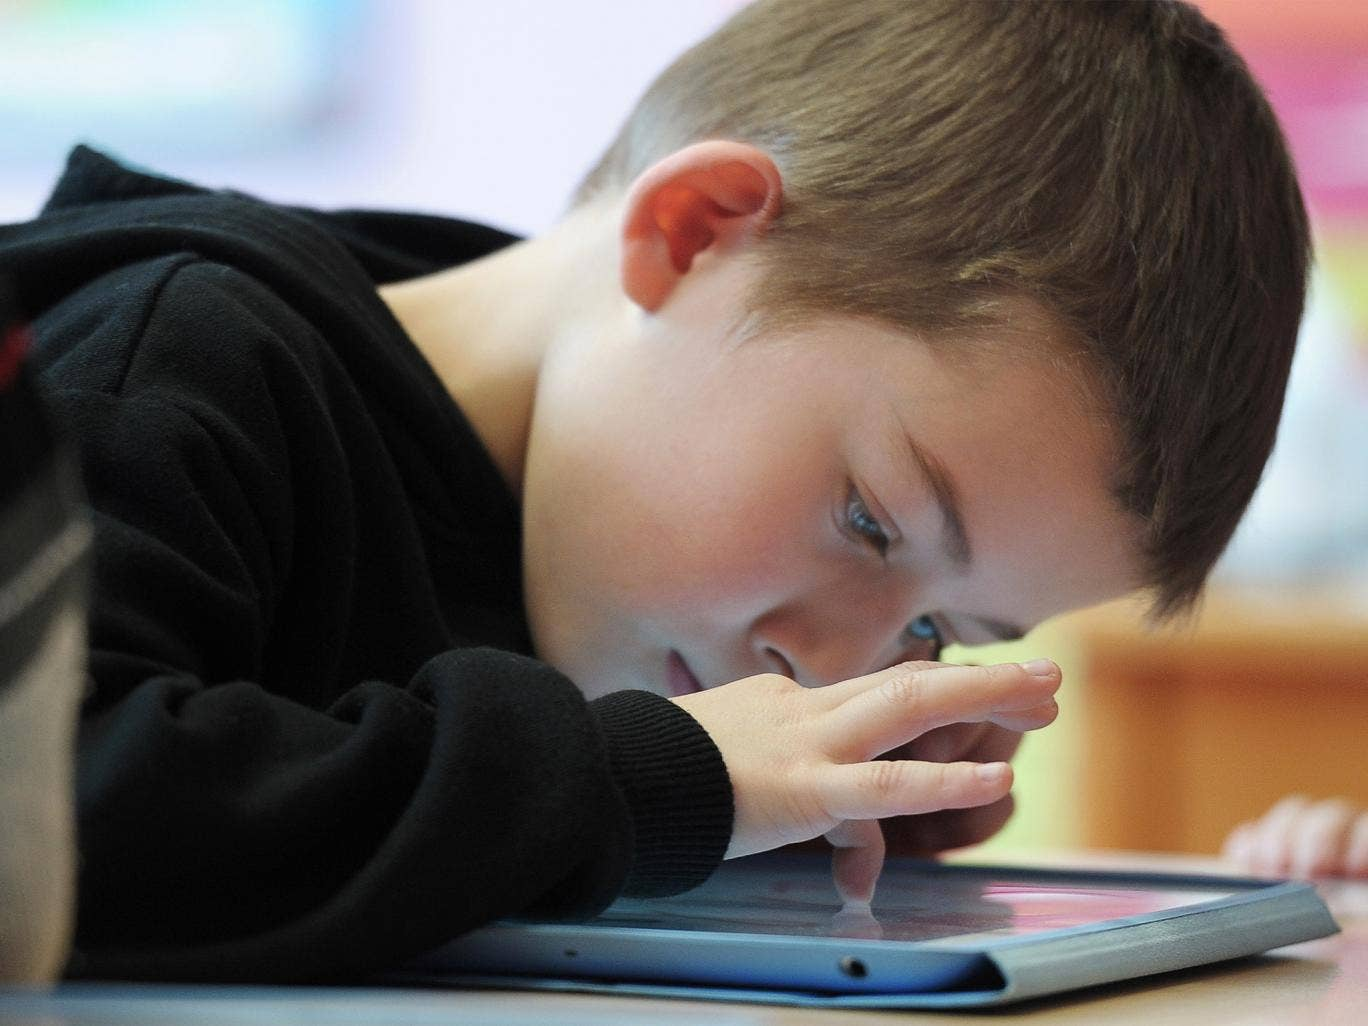 Parents are increasingly allowing children to use their tablets